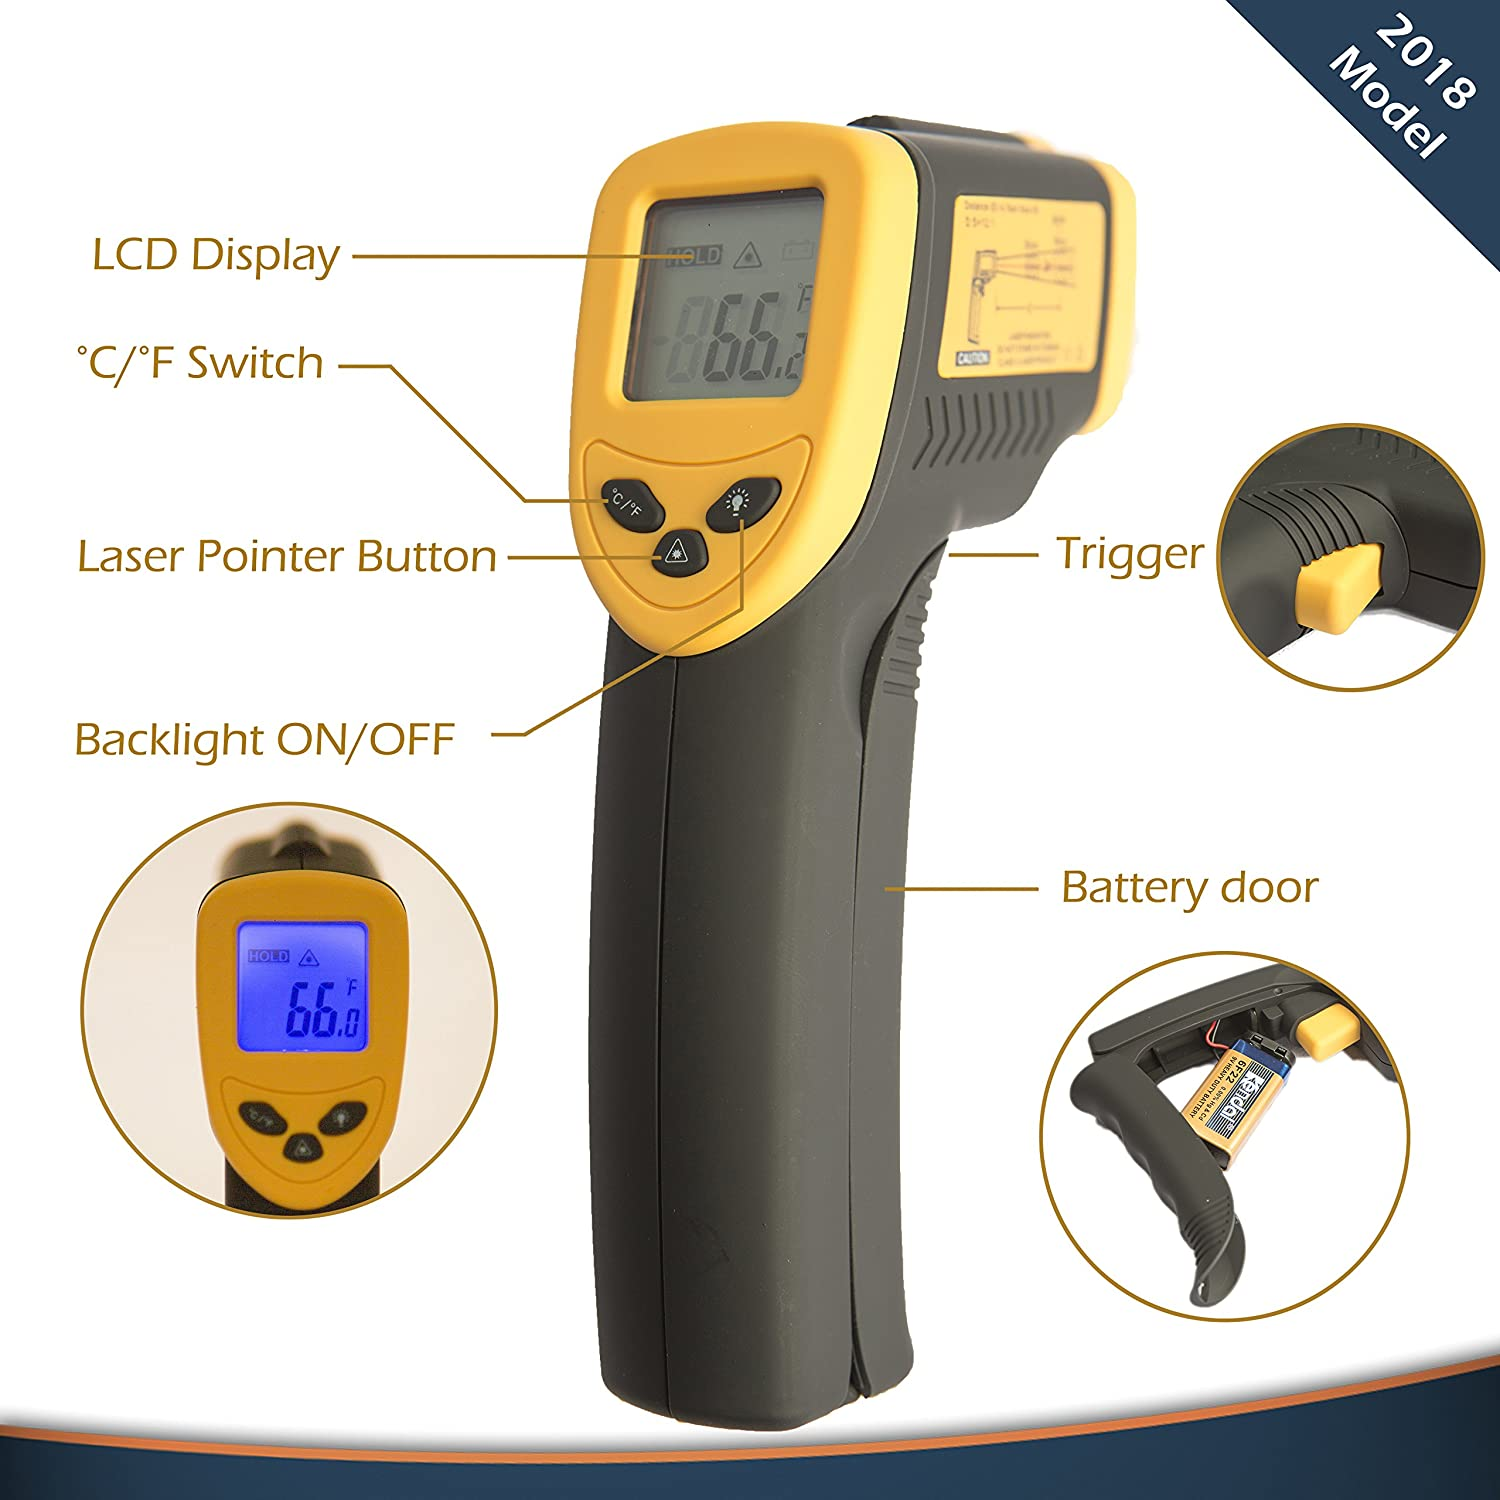 Contact thermometer series TK, model 5.06